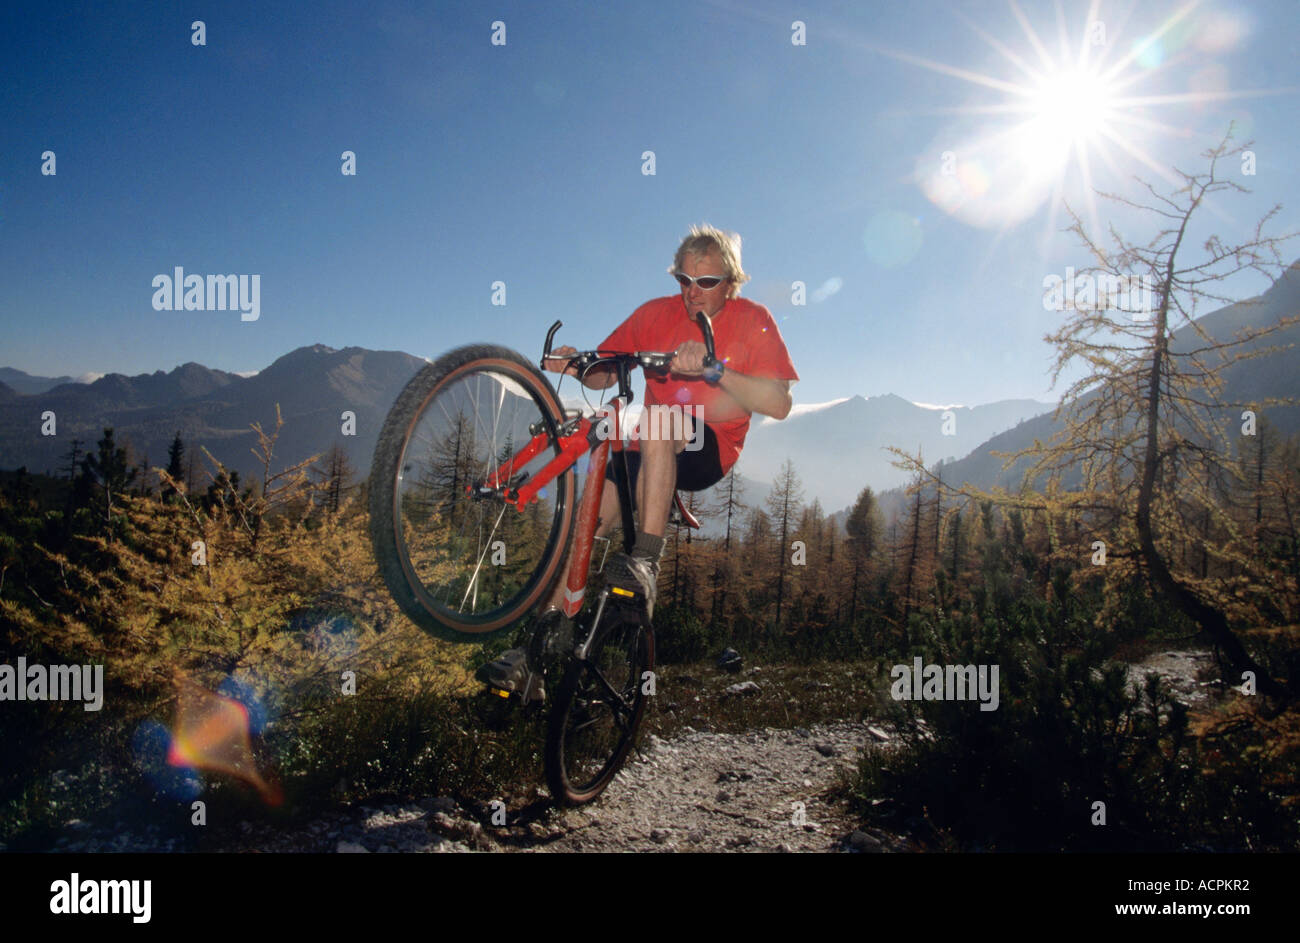 Austria, alps, man mountain biking, low angle view Stock Photo